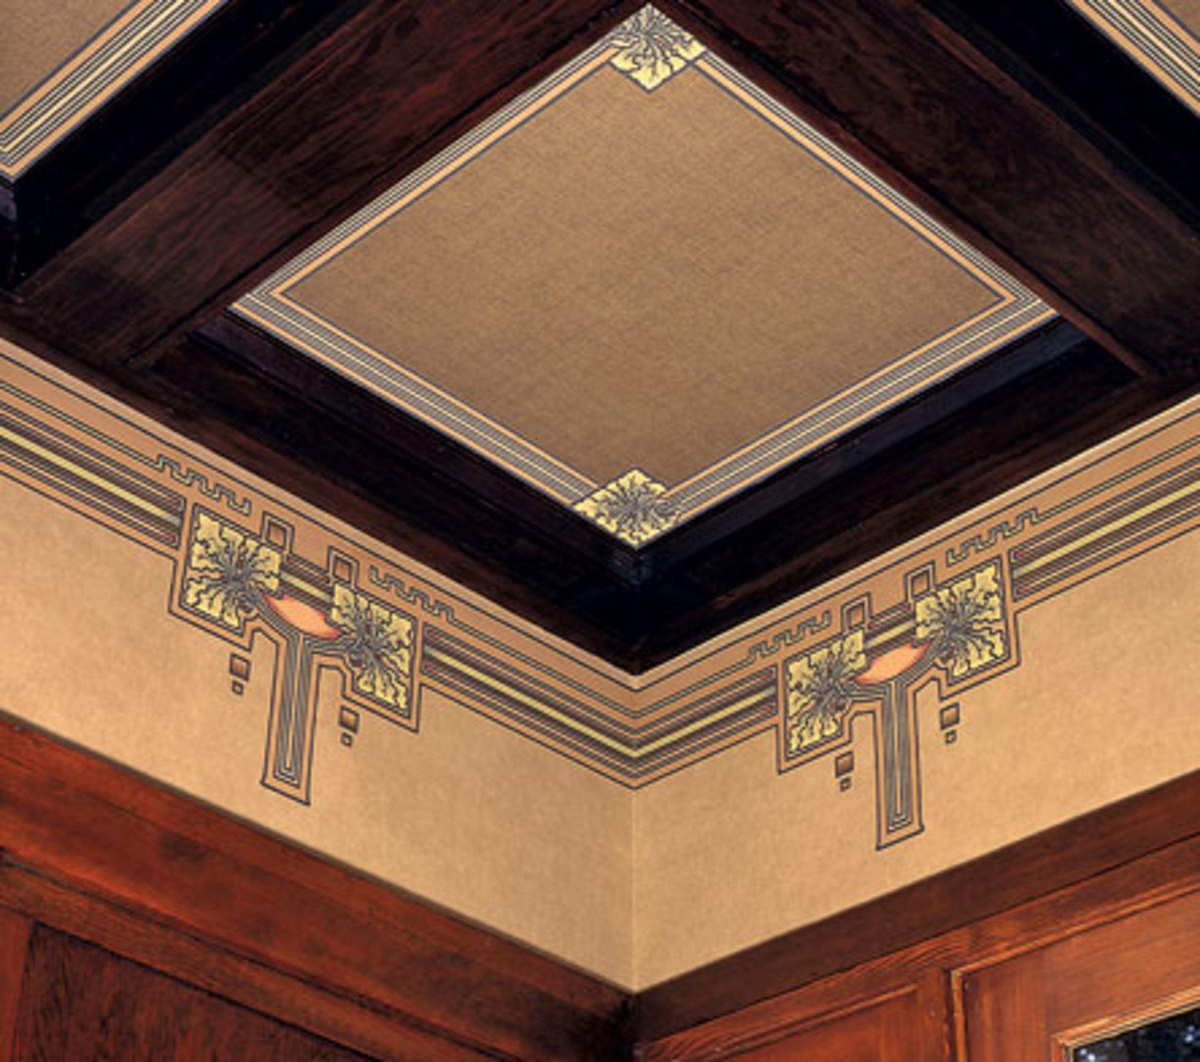 This trompe-l'oeil treatment, all done in paper, mimics the look of decorated panels between beams. Note the burlap-like texture in the enter panel.